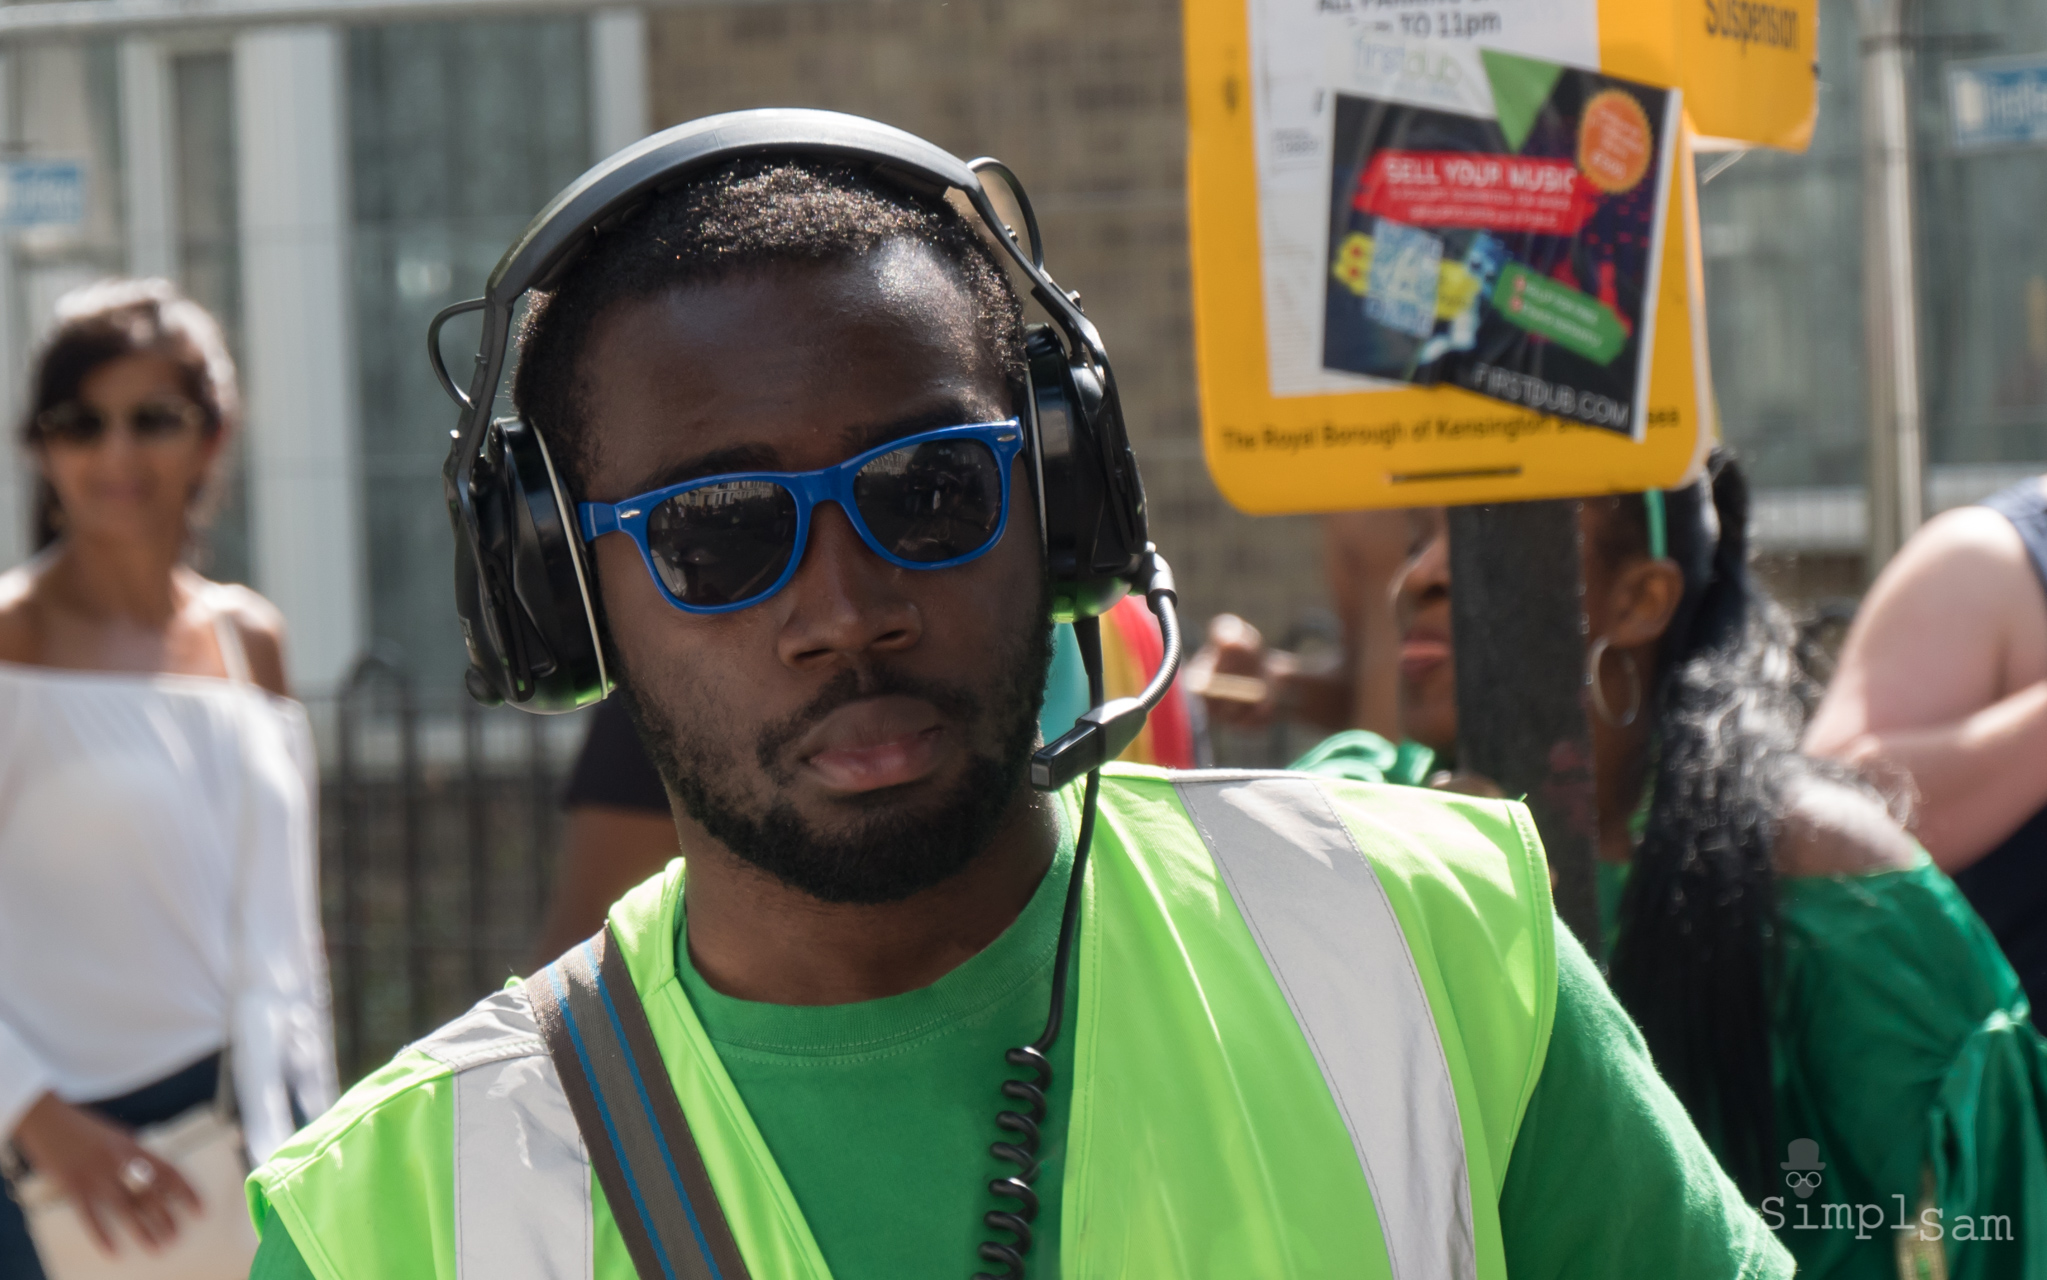 Notting Hill Carnival 2017 - Headphone zone